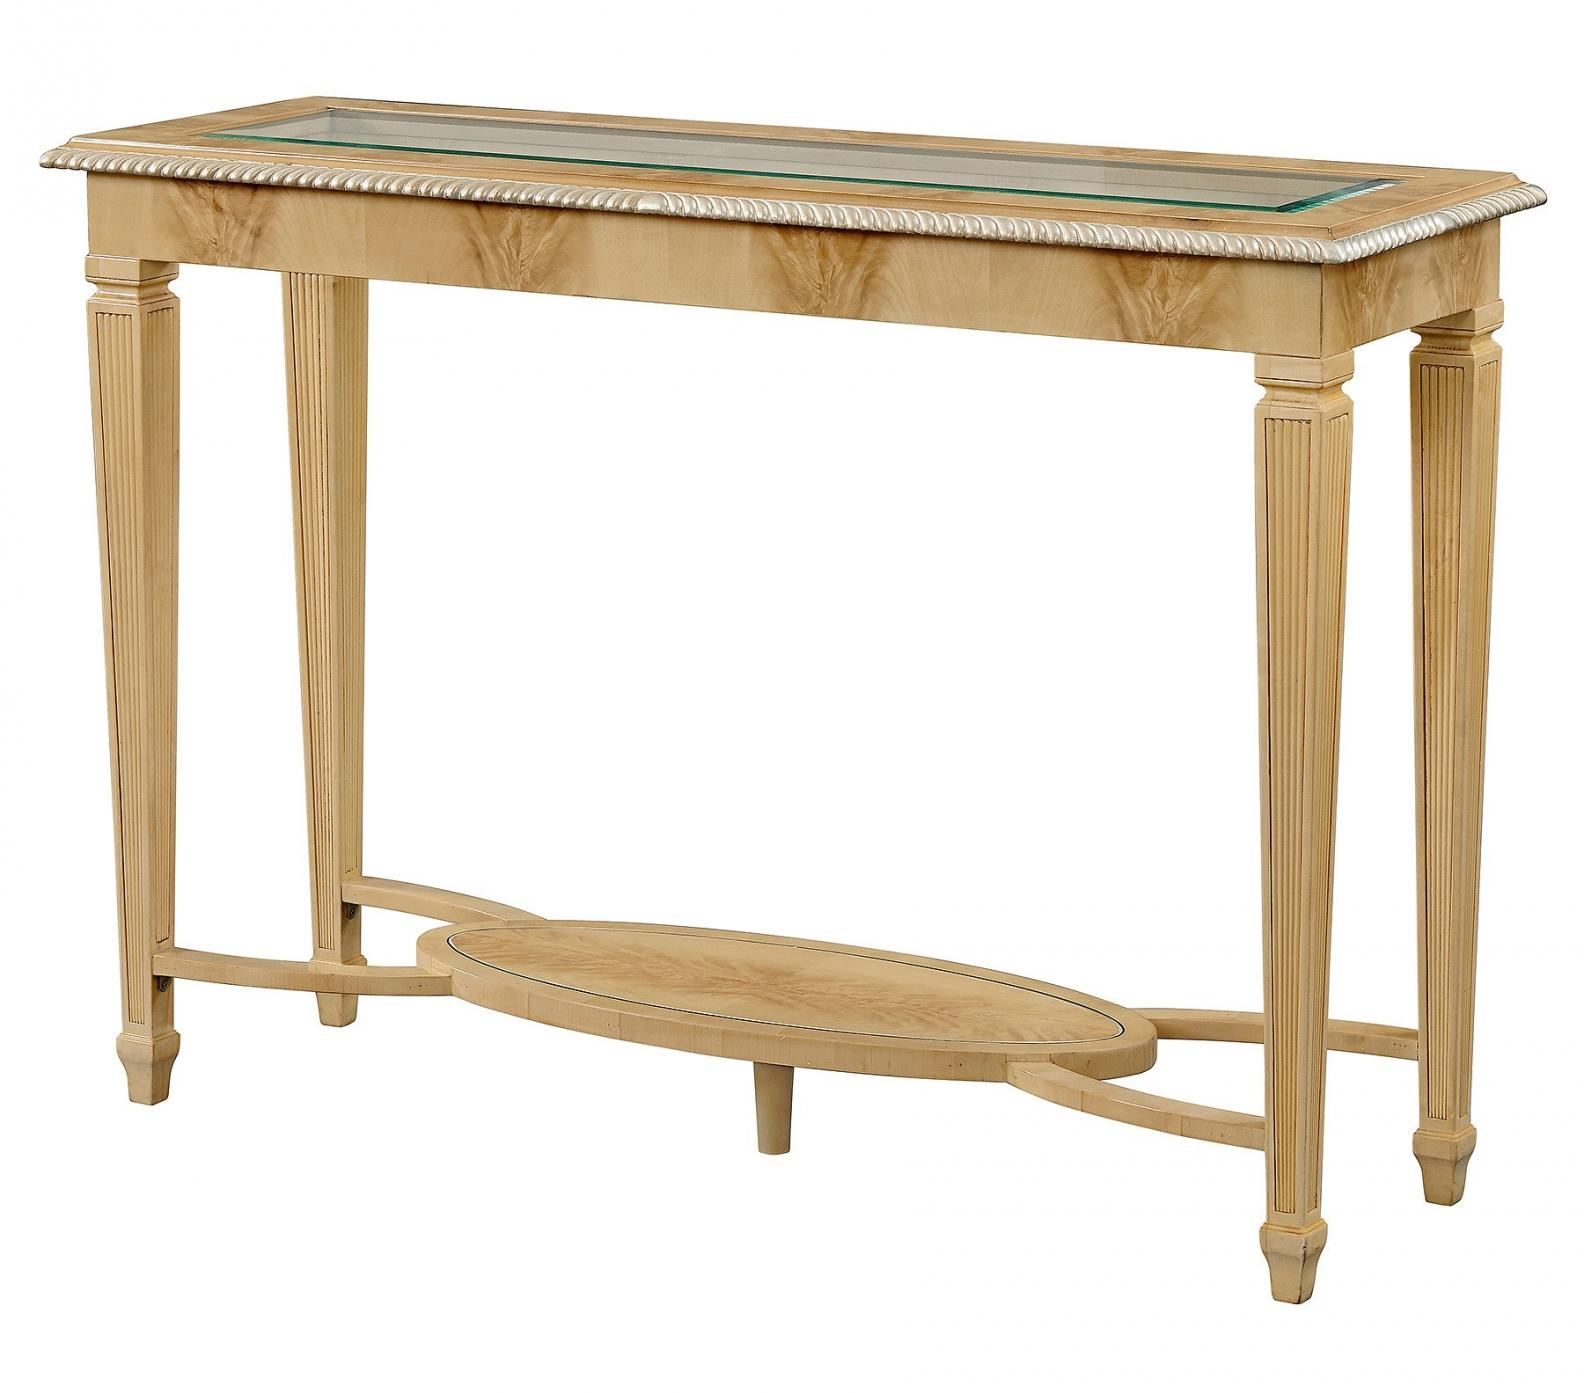 Crotch sycamore console table with glass top